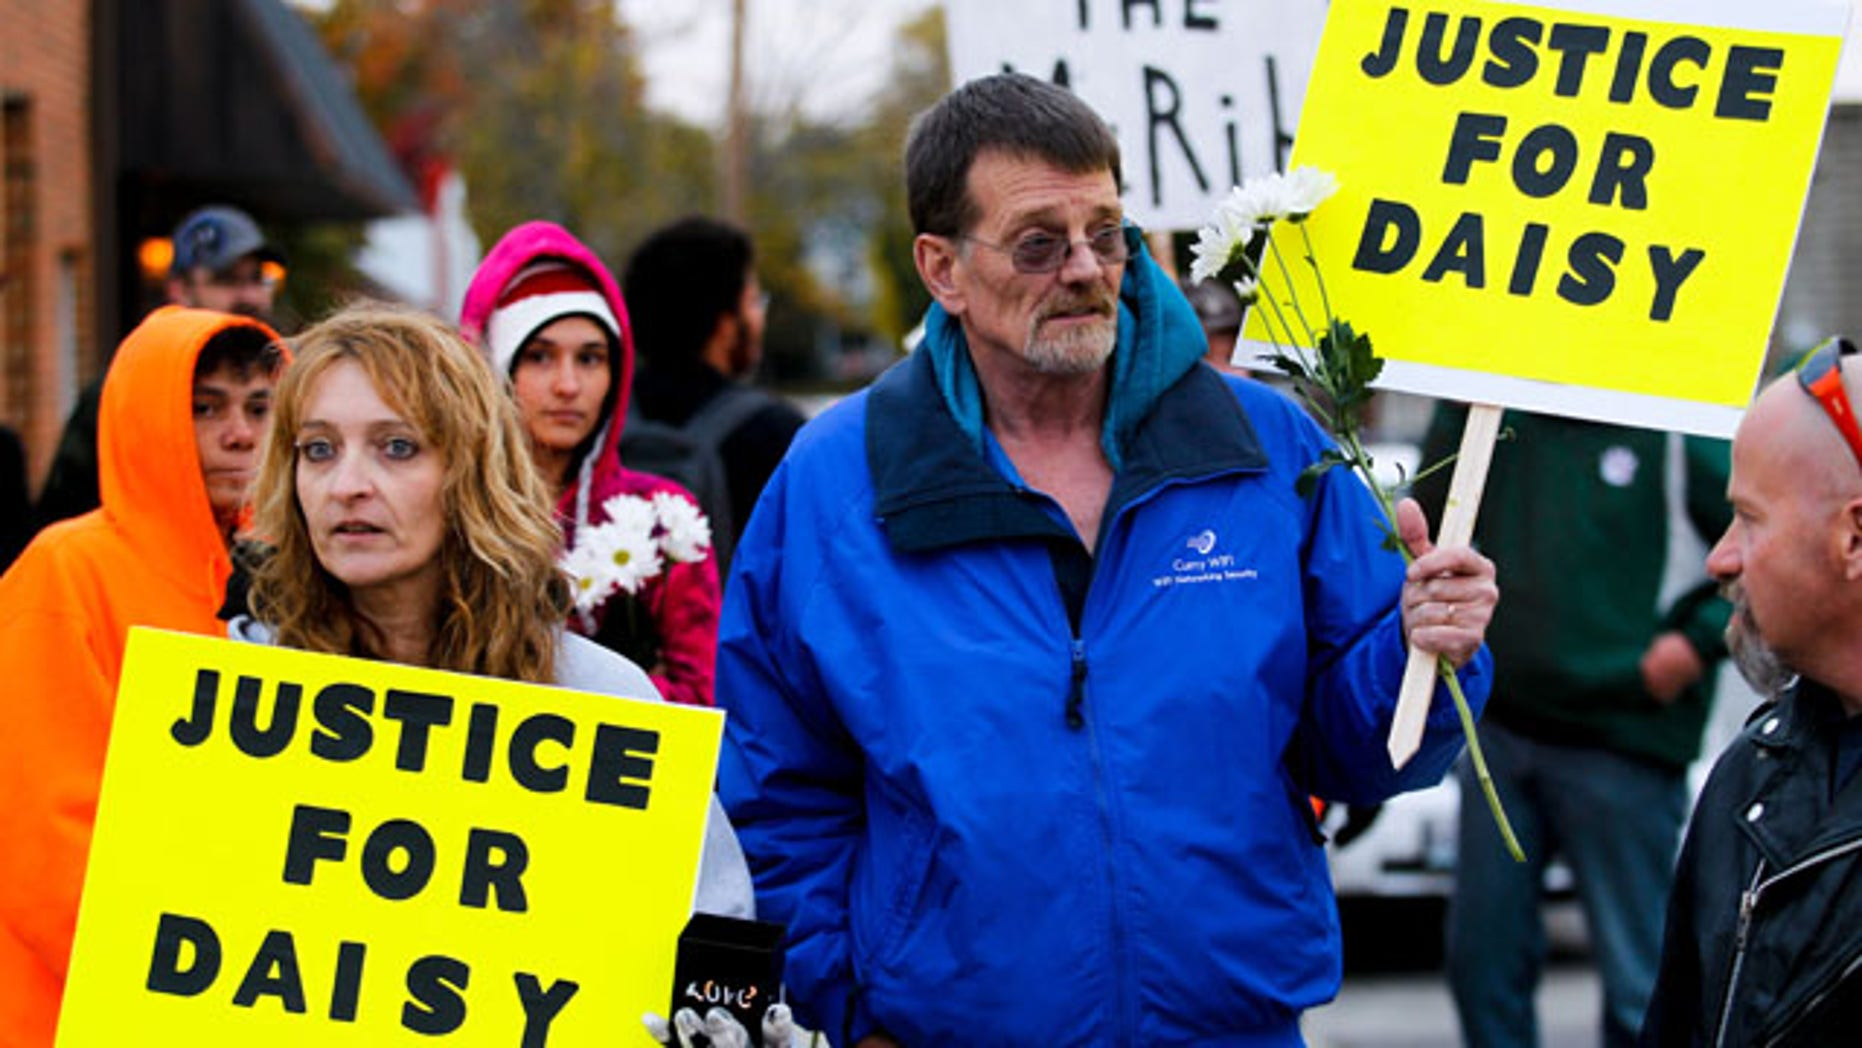 """October 22, 2013: Shana Curry, left, and her husband Scott Curry hold signs at the """"Justice for Daisy"""" rally in Maryville, Mo. The rally was organized on the Internet on behalf of Daisy Coleman, a girl who says she was sexually assaulted nearly two years ago when she was 14. (AP Photo/The St. Joseph News-Press, Sait Serkan Gurbuz)"""